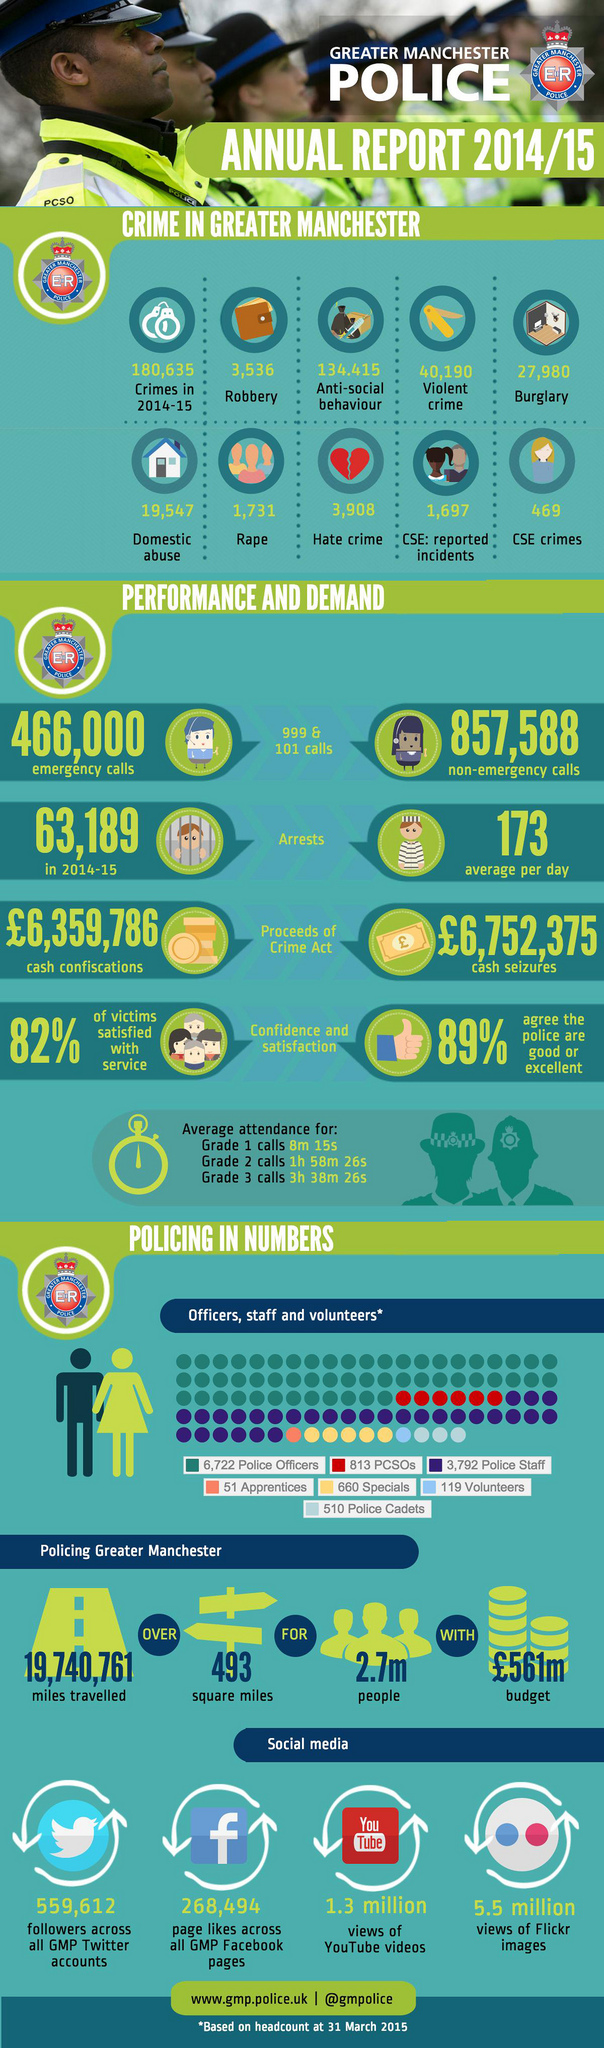 Greater Manchester Police Annual Report 201415 (With